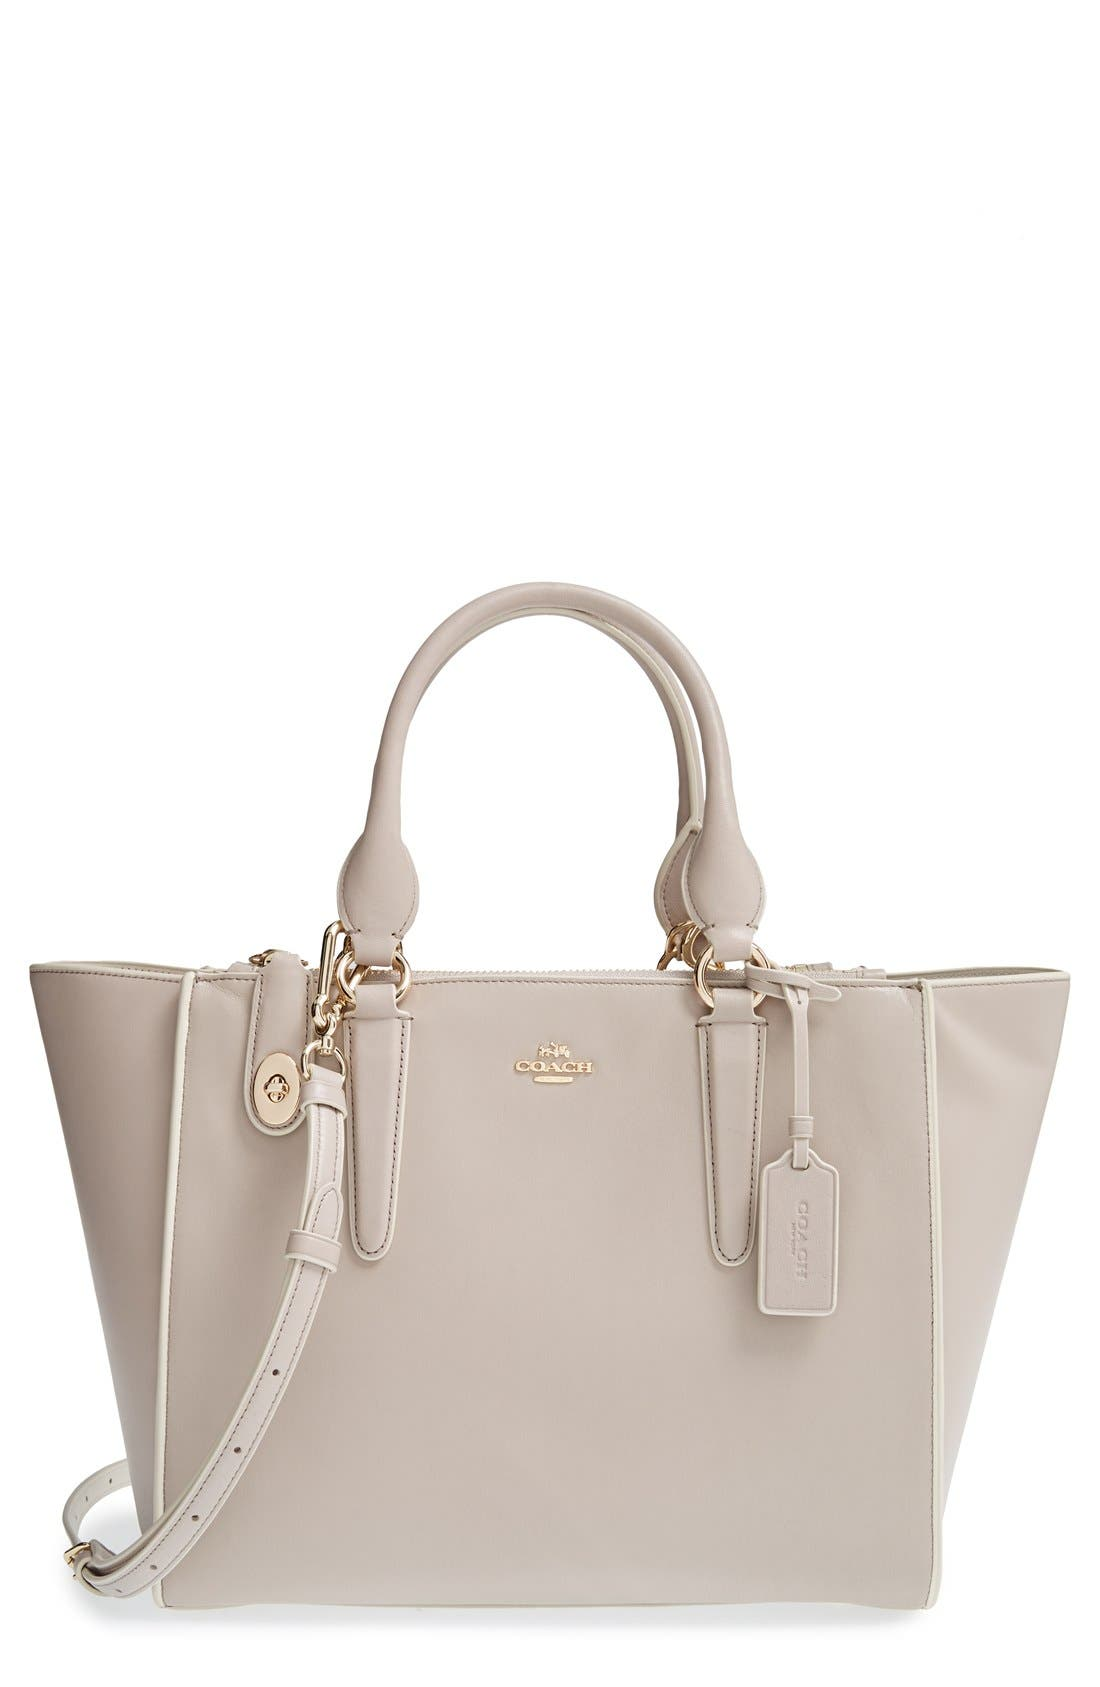 Alternate Image 1 Selected - COACH 'Crosby' Leather Tote